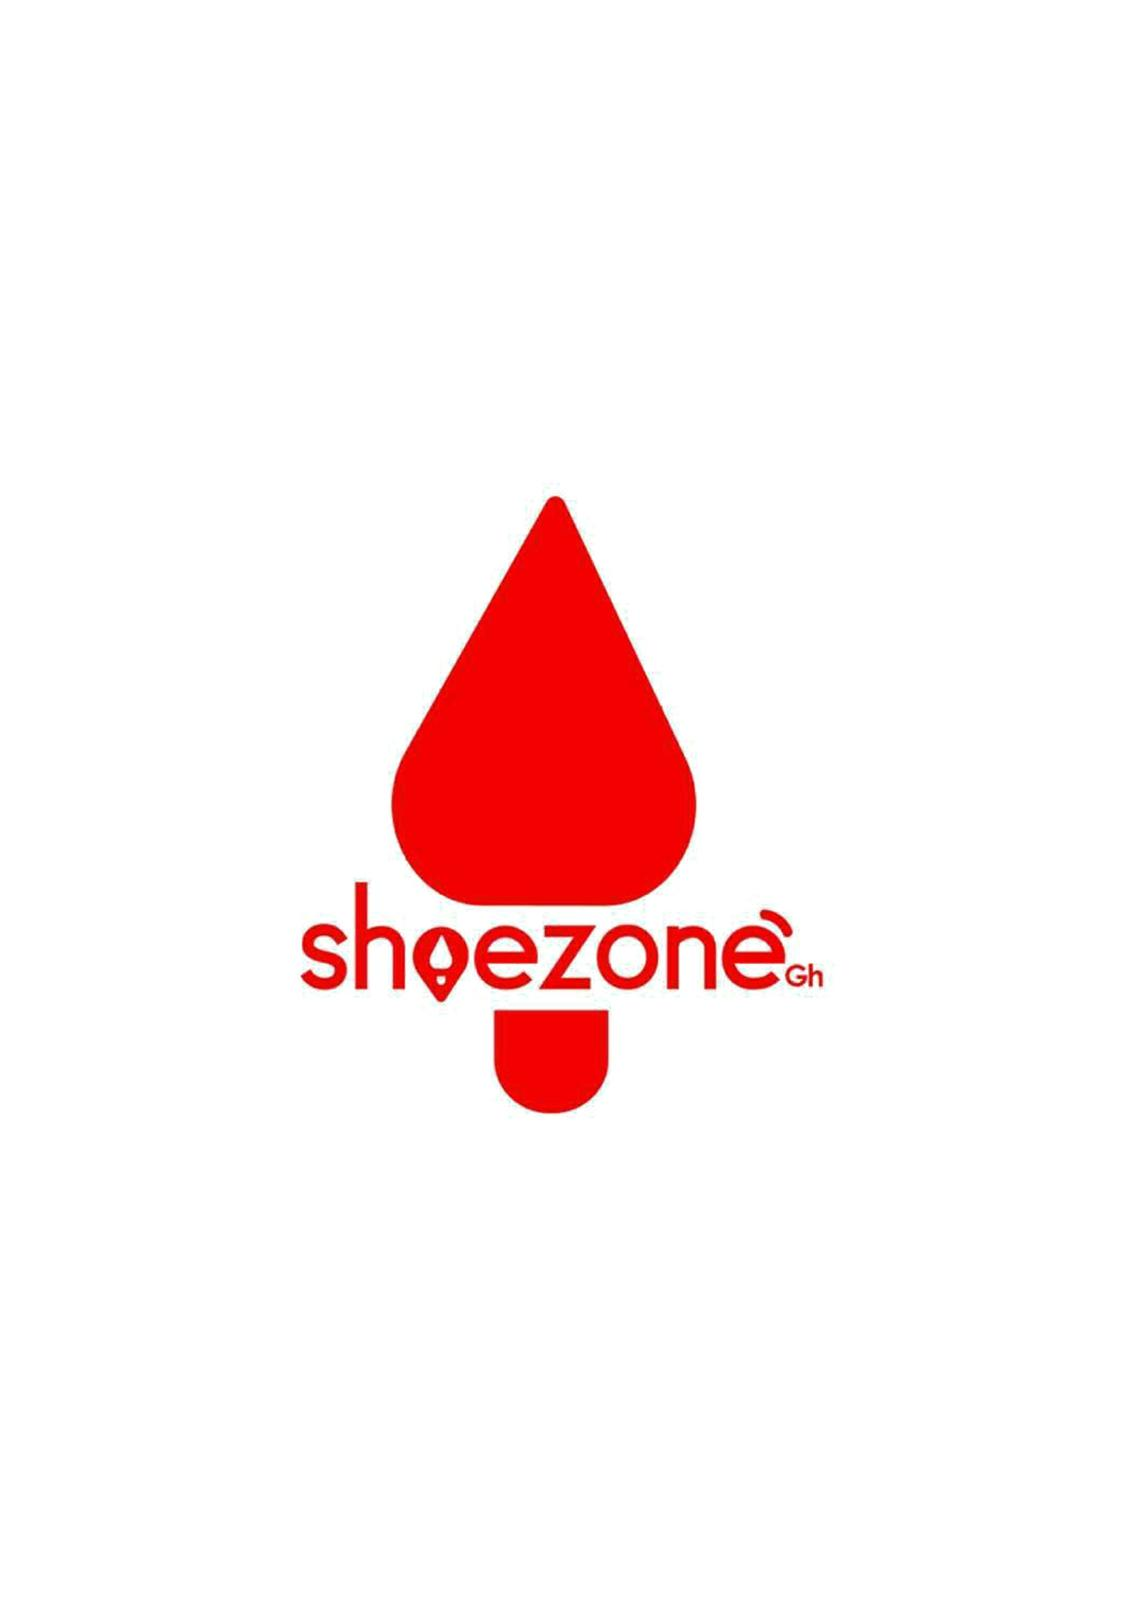 Retail Outlet SHOEZONEGH Offers the Latest Styles in Fashionable UK Brands